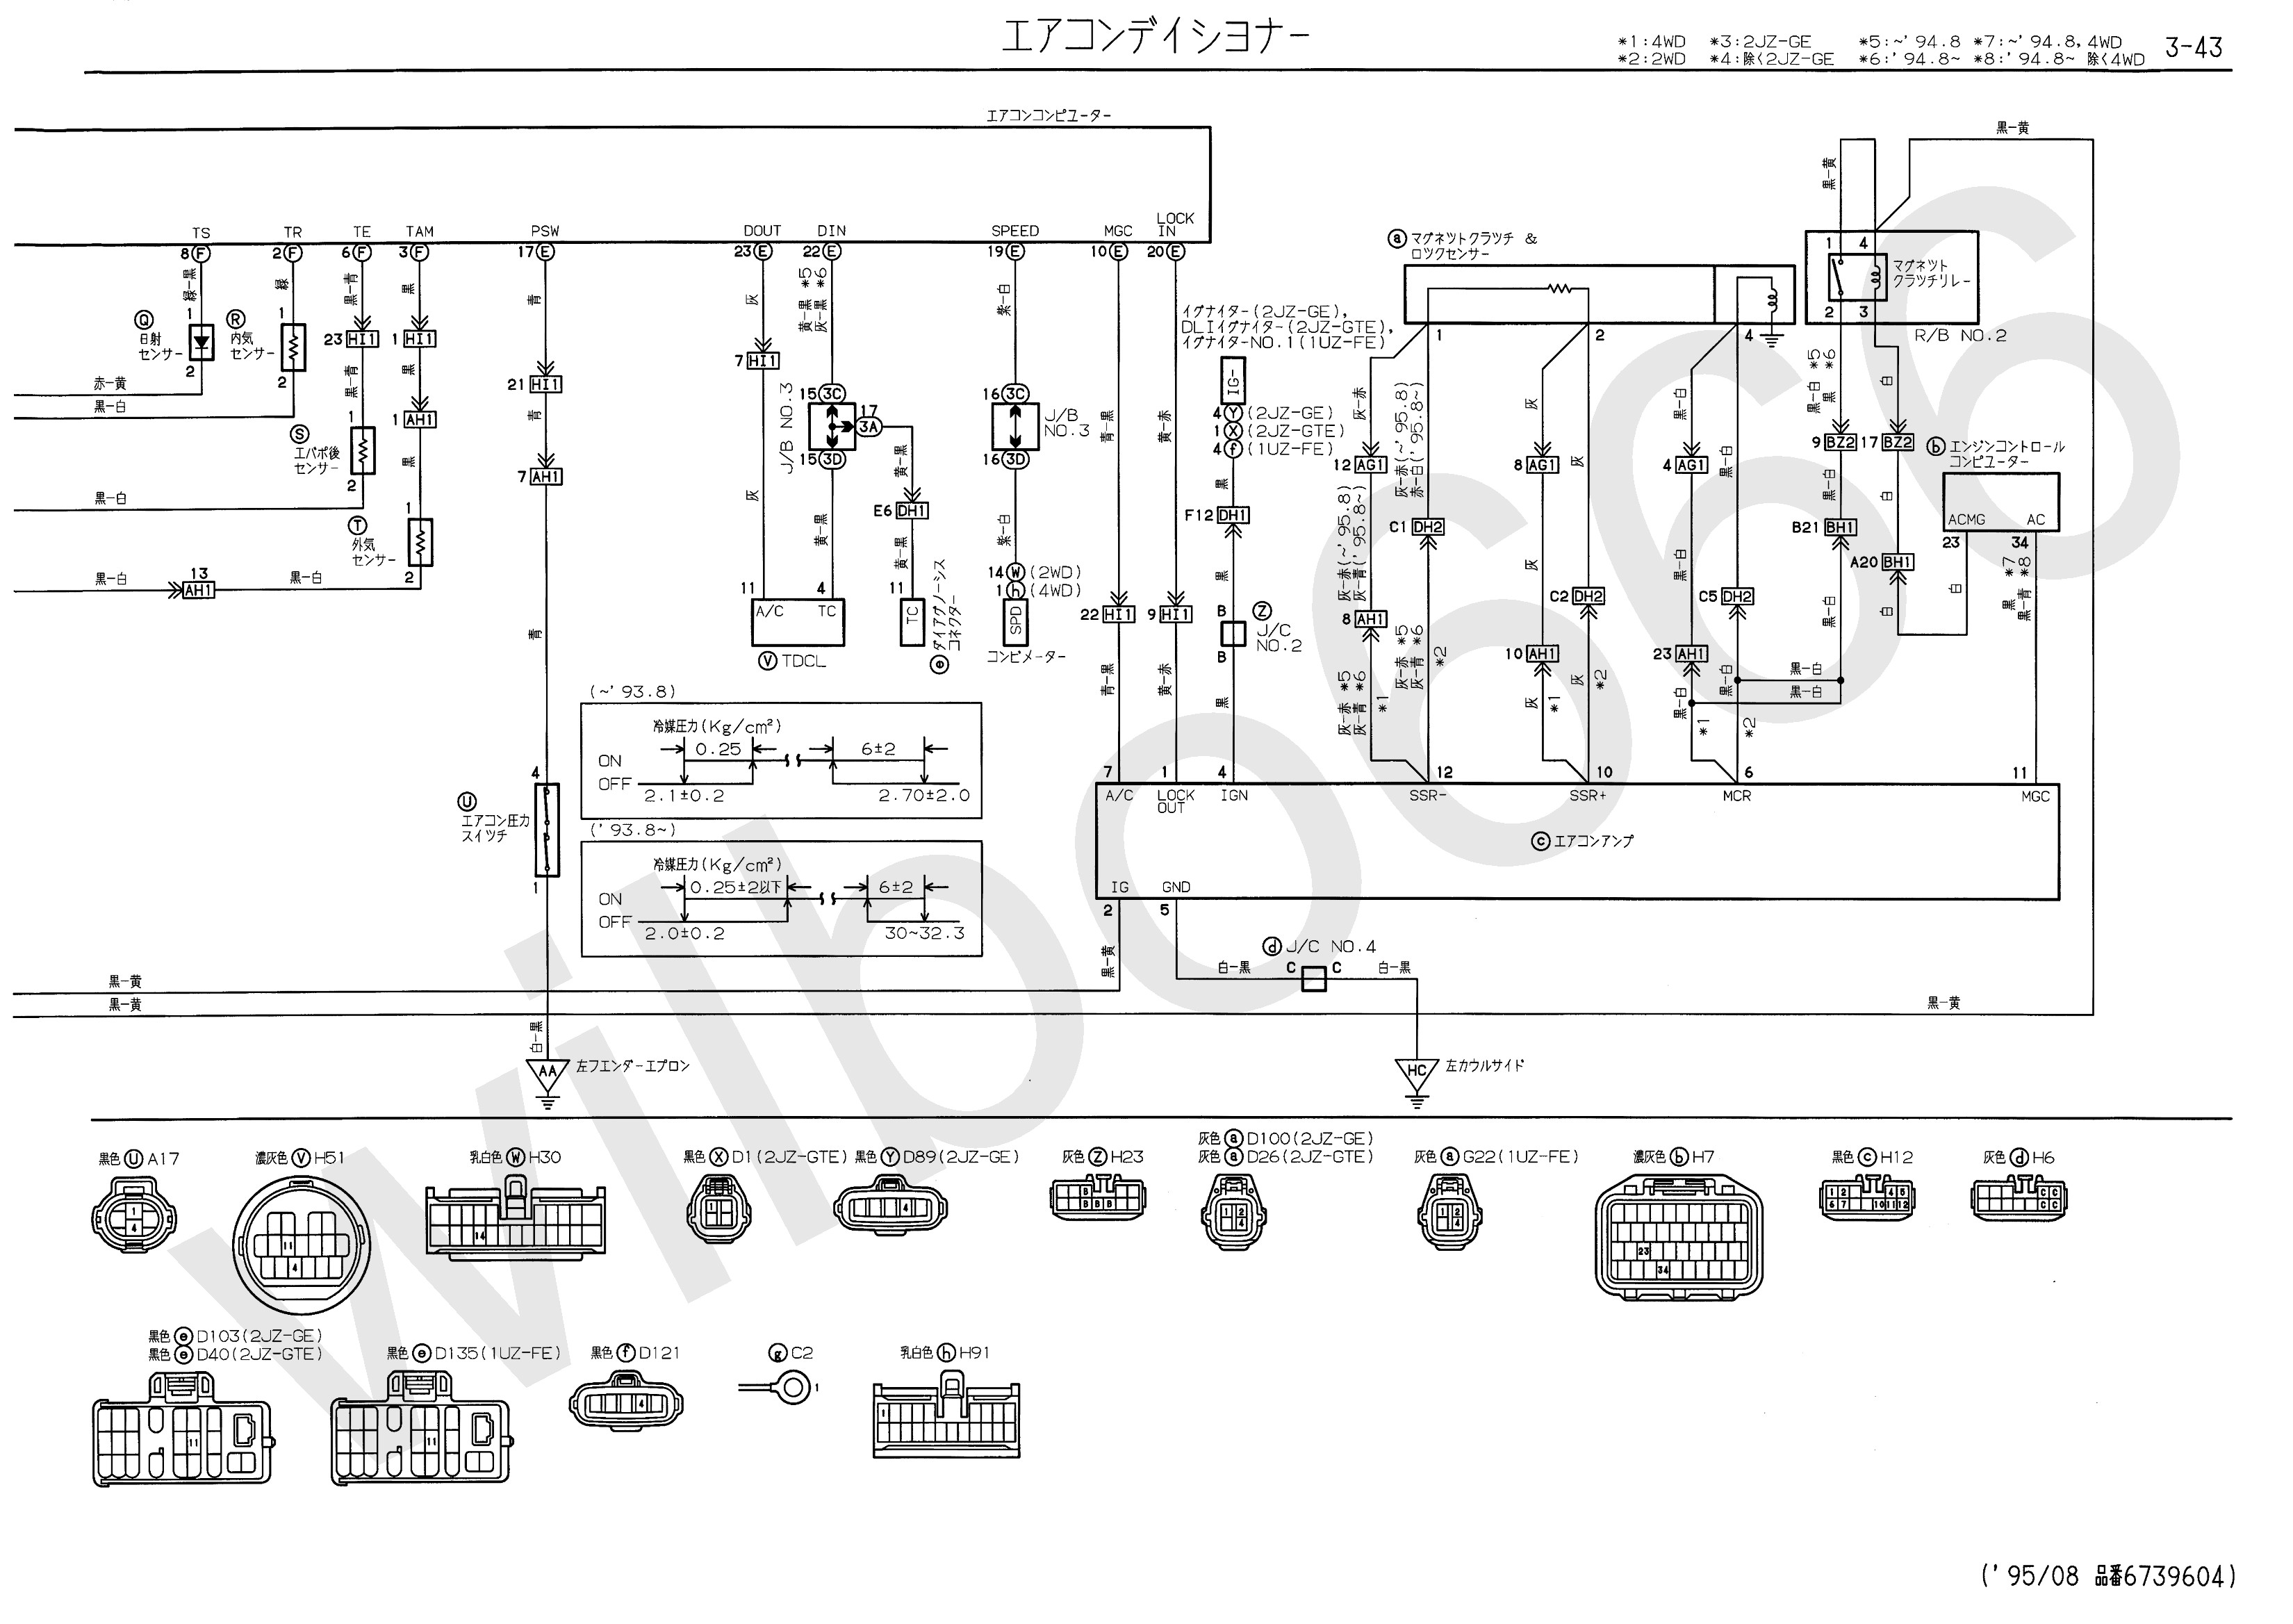 S1 Switch Wiring Diagram Wilbo666 2jz Gte Jzs147 Aristo Engine Wiring Of S1 Switch Wiring Diagram